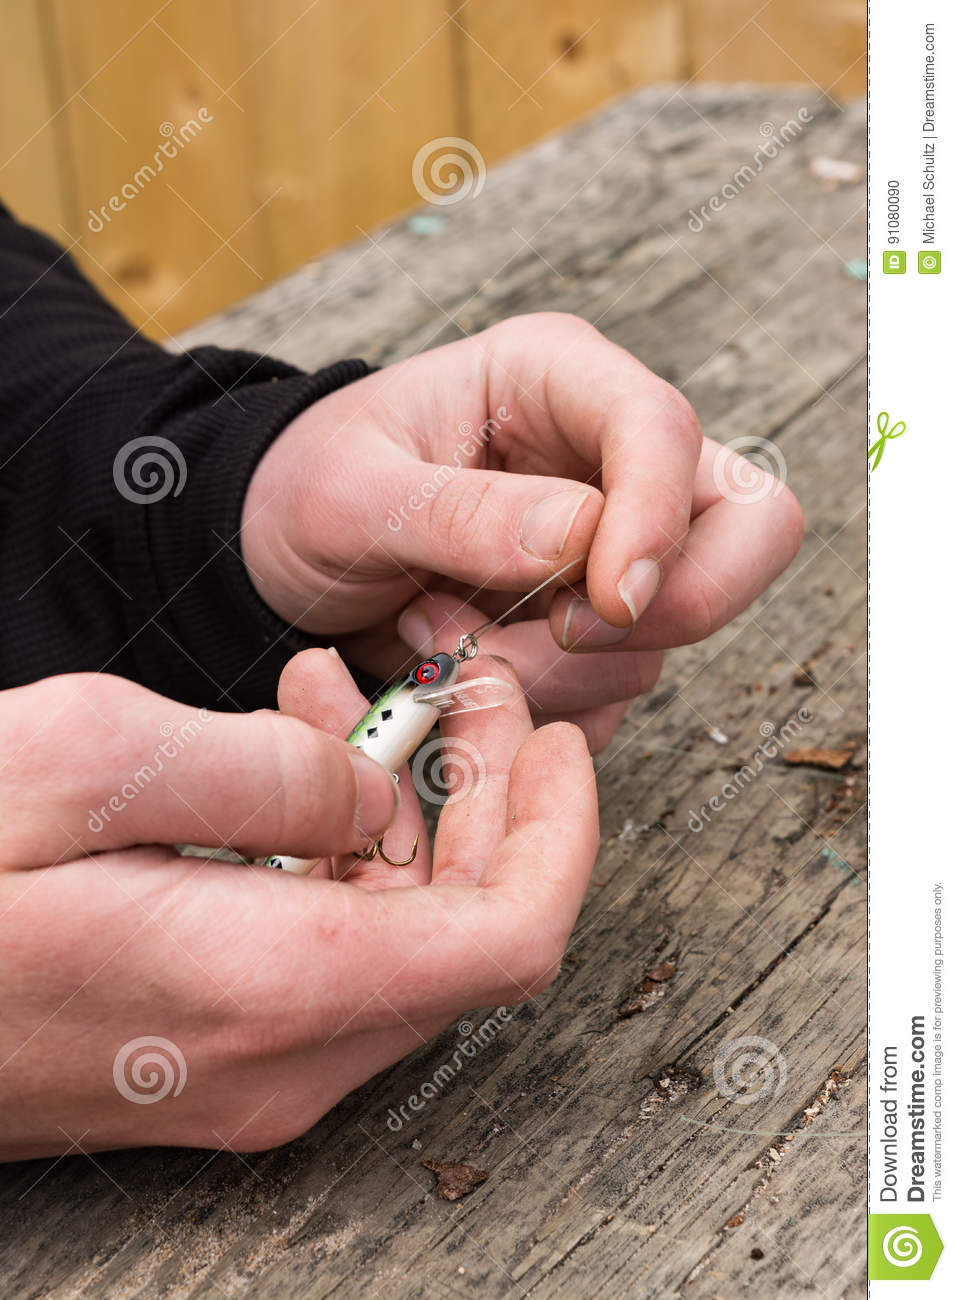 Hands tying fishing lure stock photo. Image of fishing - 91080090